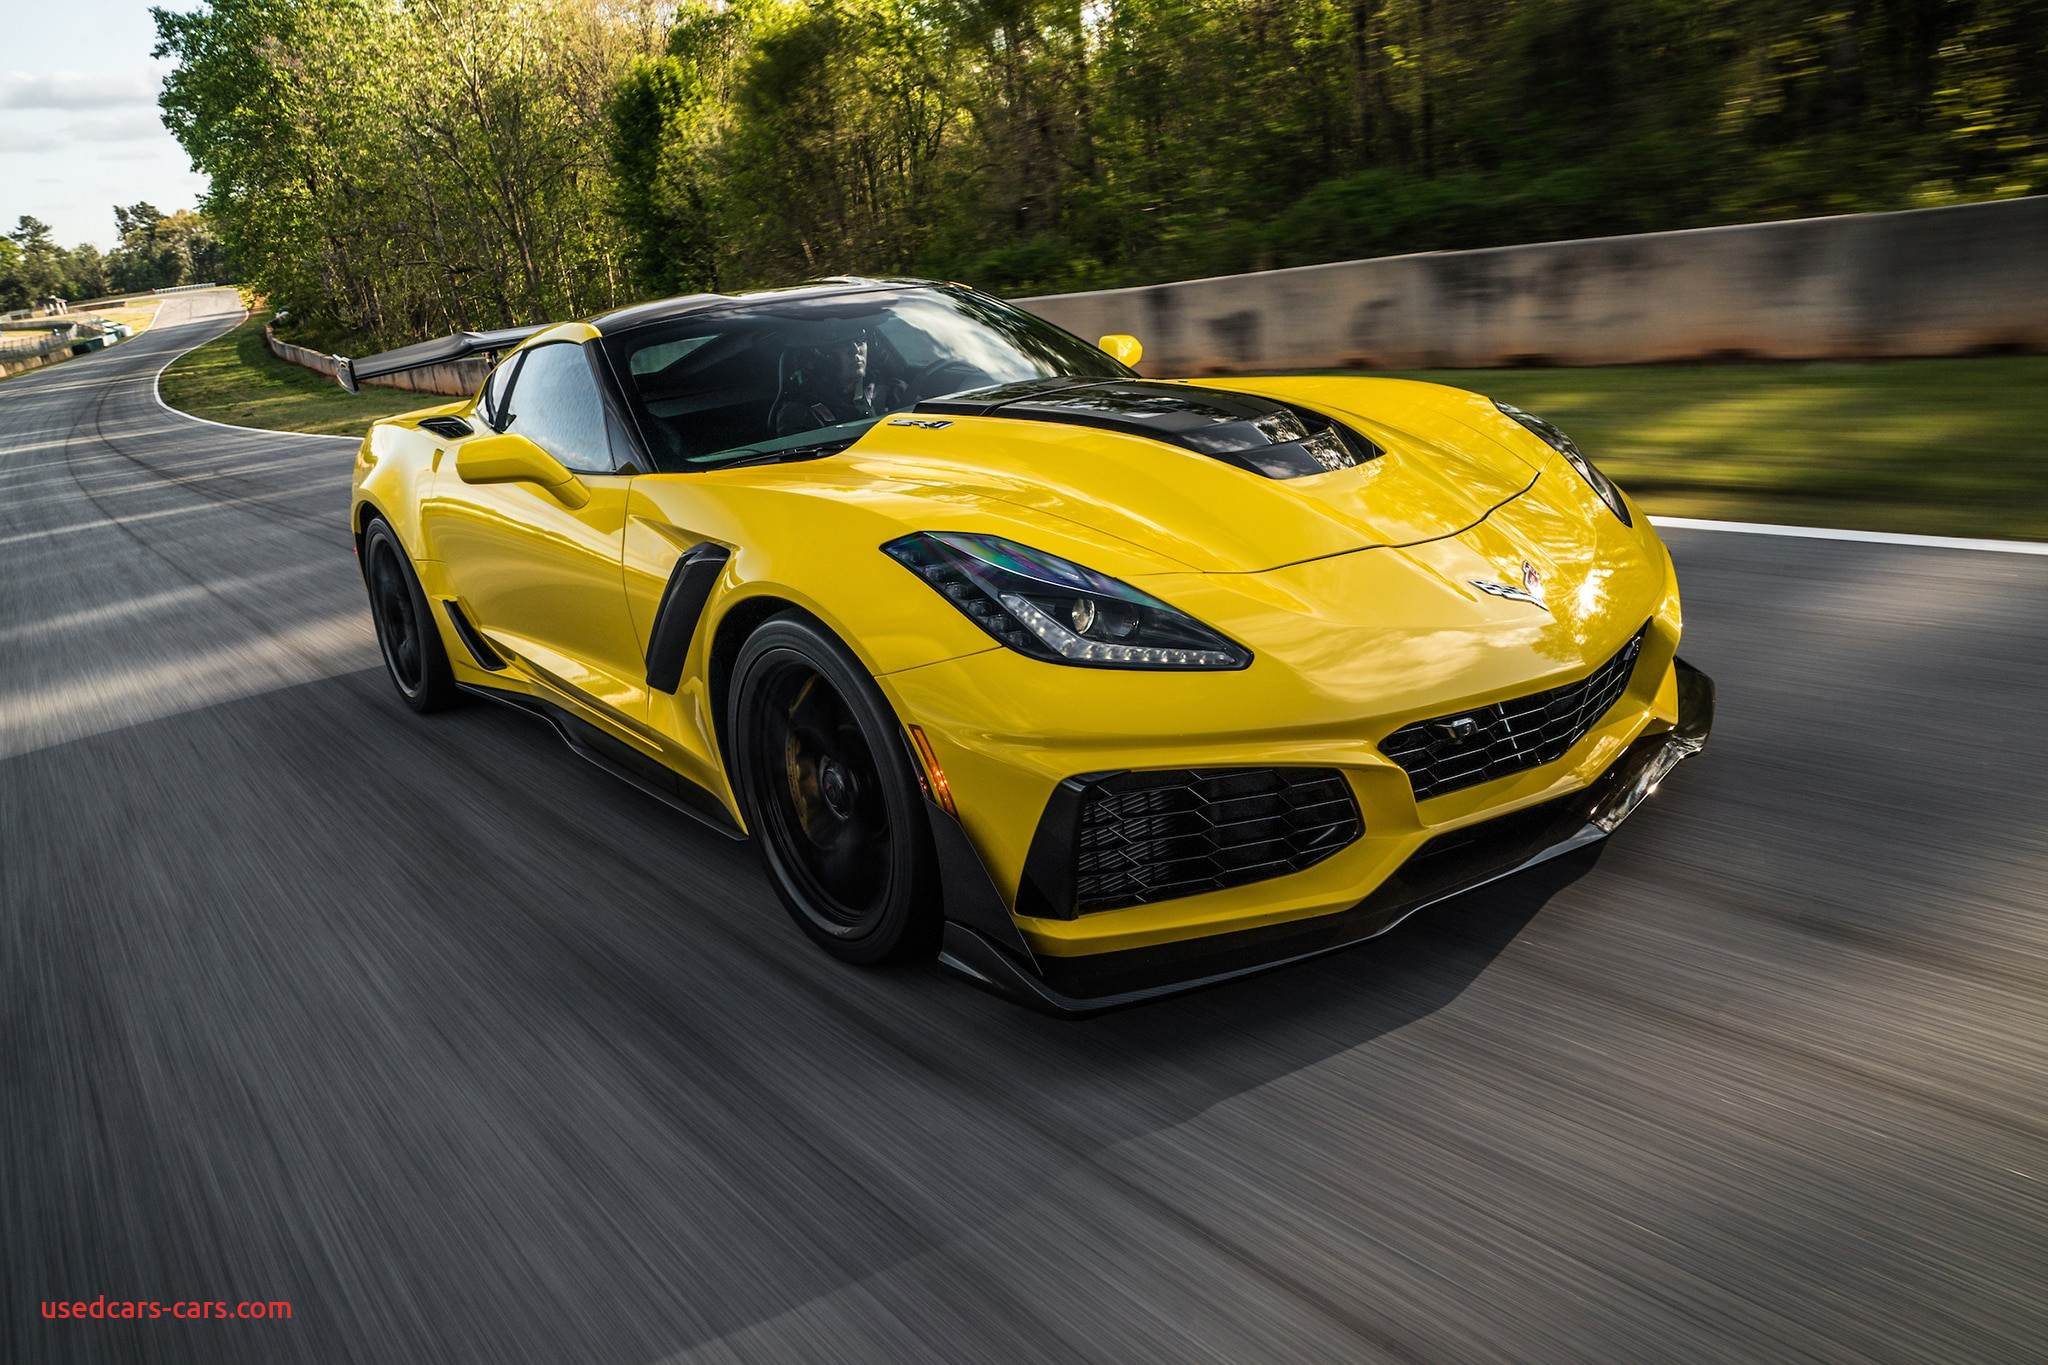 2019 chevrolet corvette zr1 review first drive